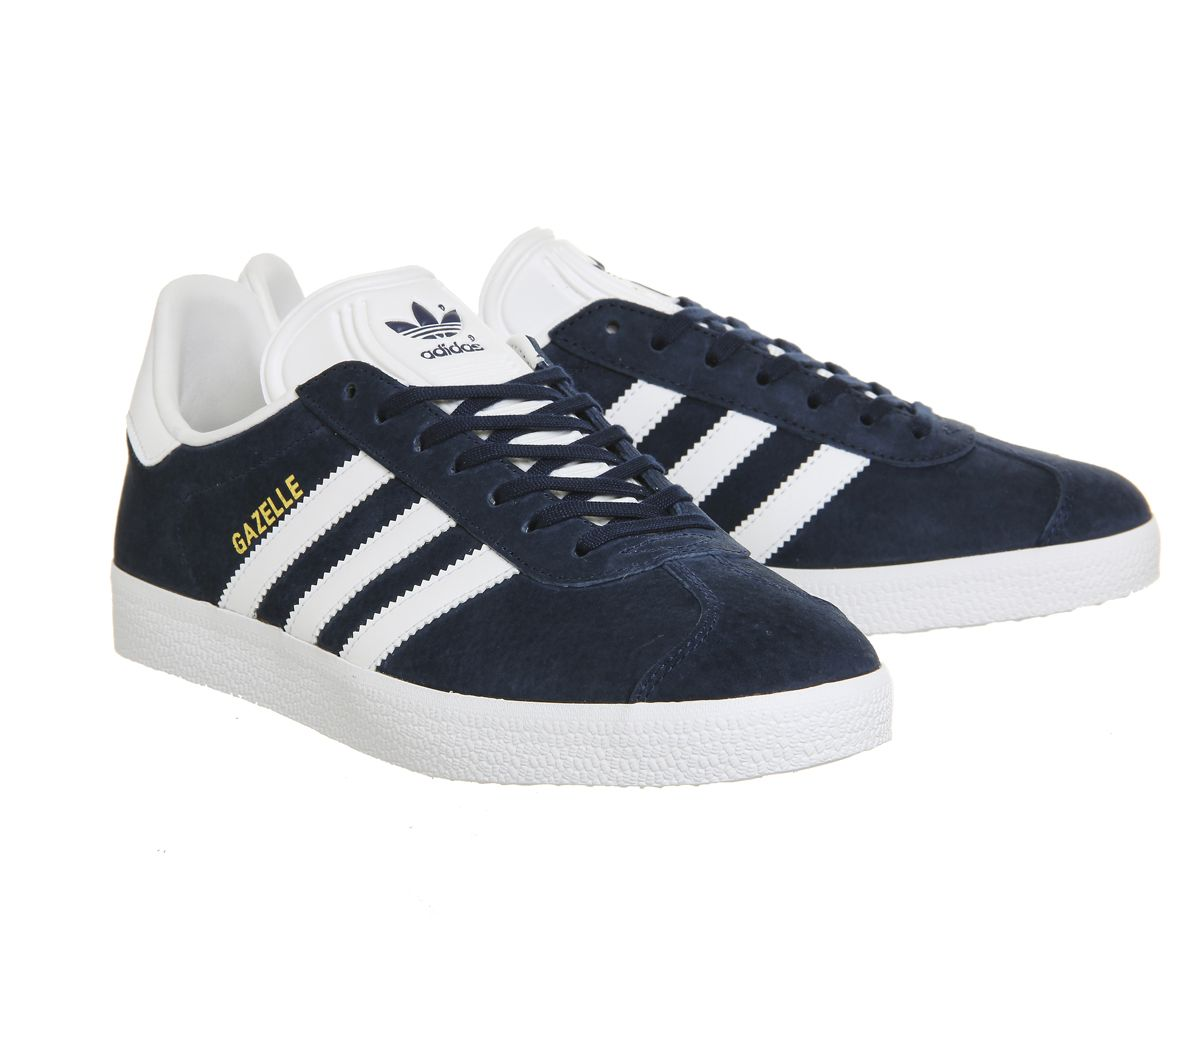 Vacunar Por favor Cordero  adidas Gazelle Trainers Collegiate Navy White - His trainers in 2020 | Adidas  gazelle, Adidas trainers women, Adidas originals